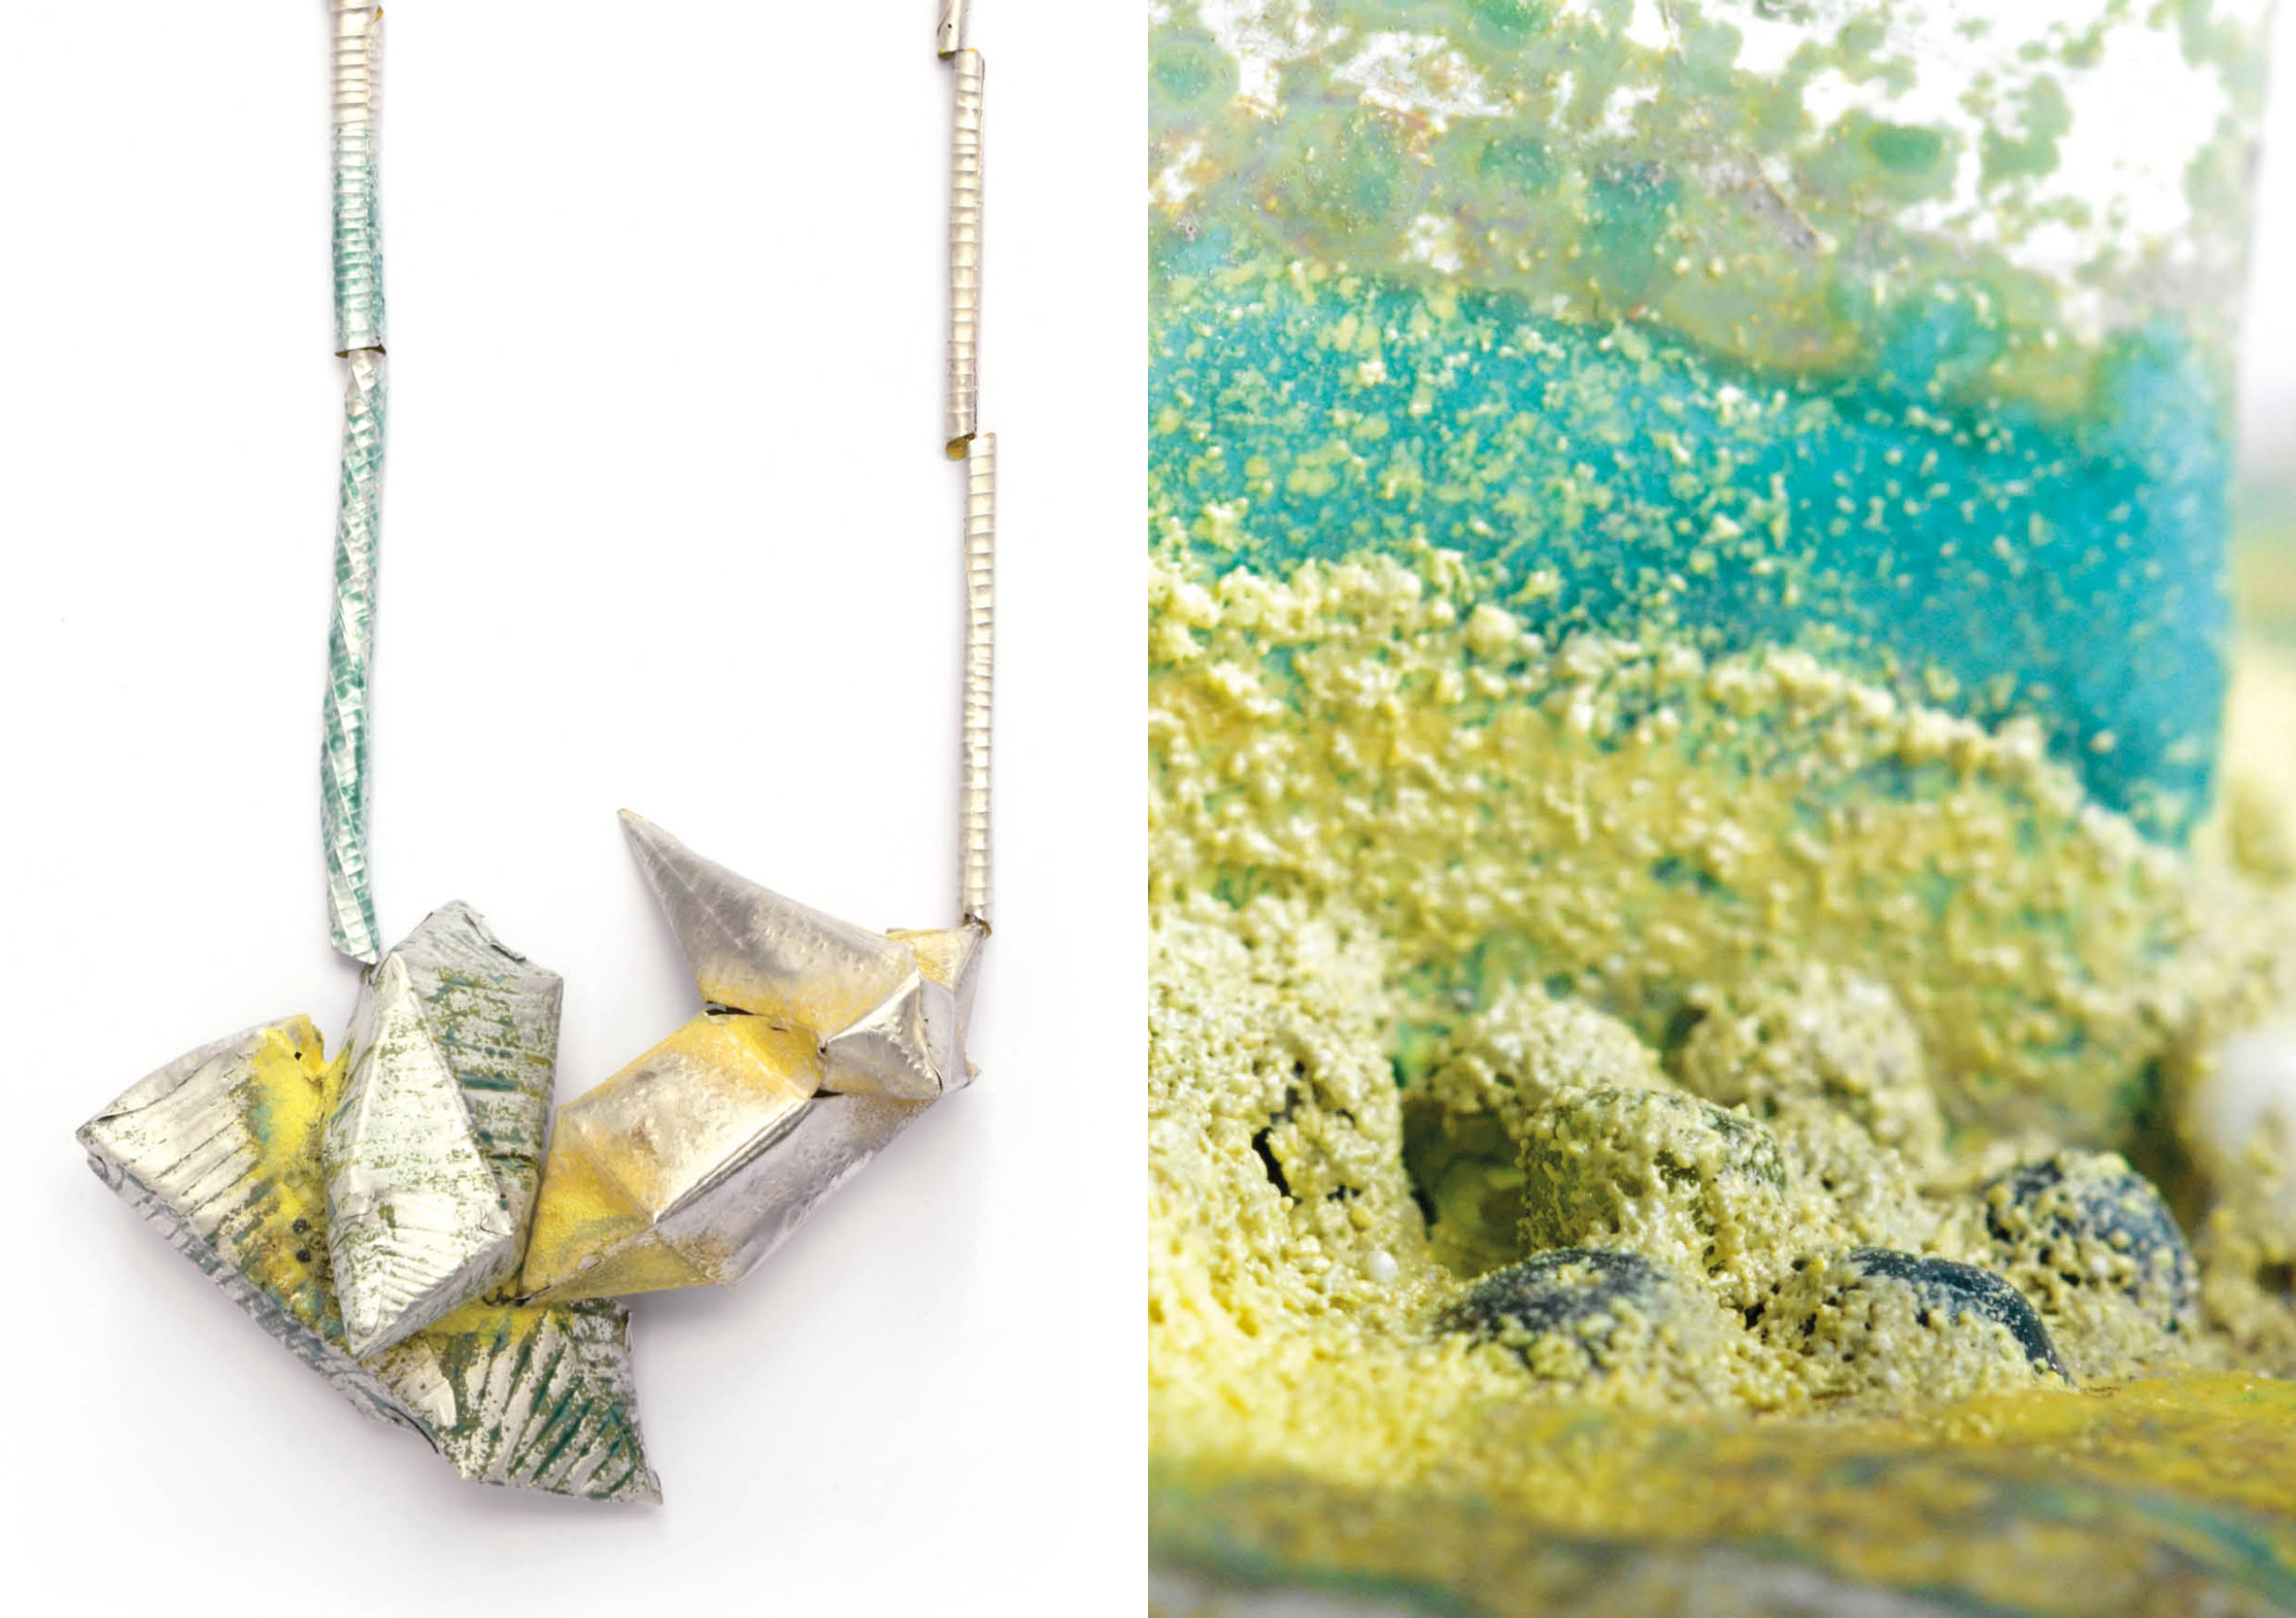 Projects from PXL-MAD School of Arts treat jewellery as